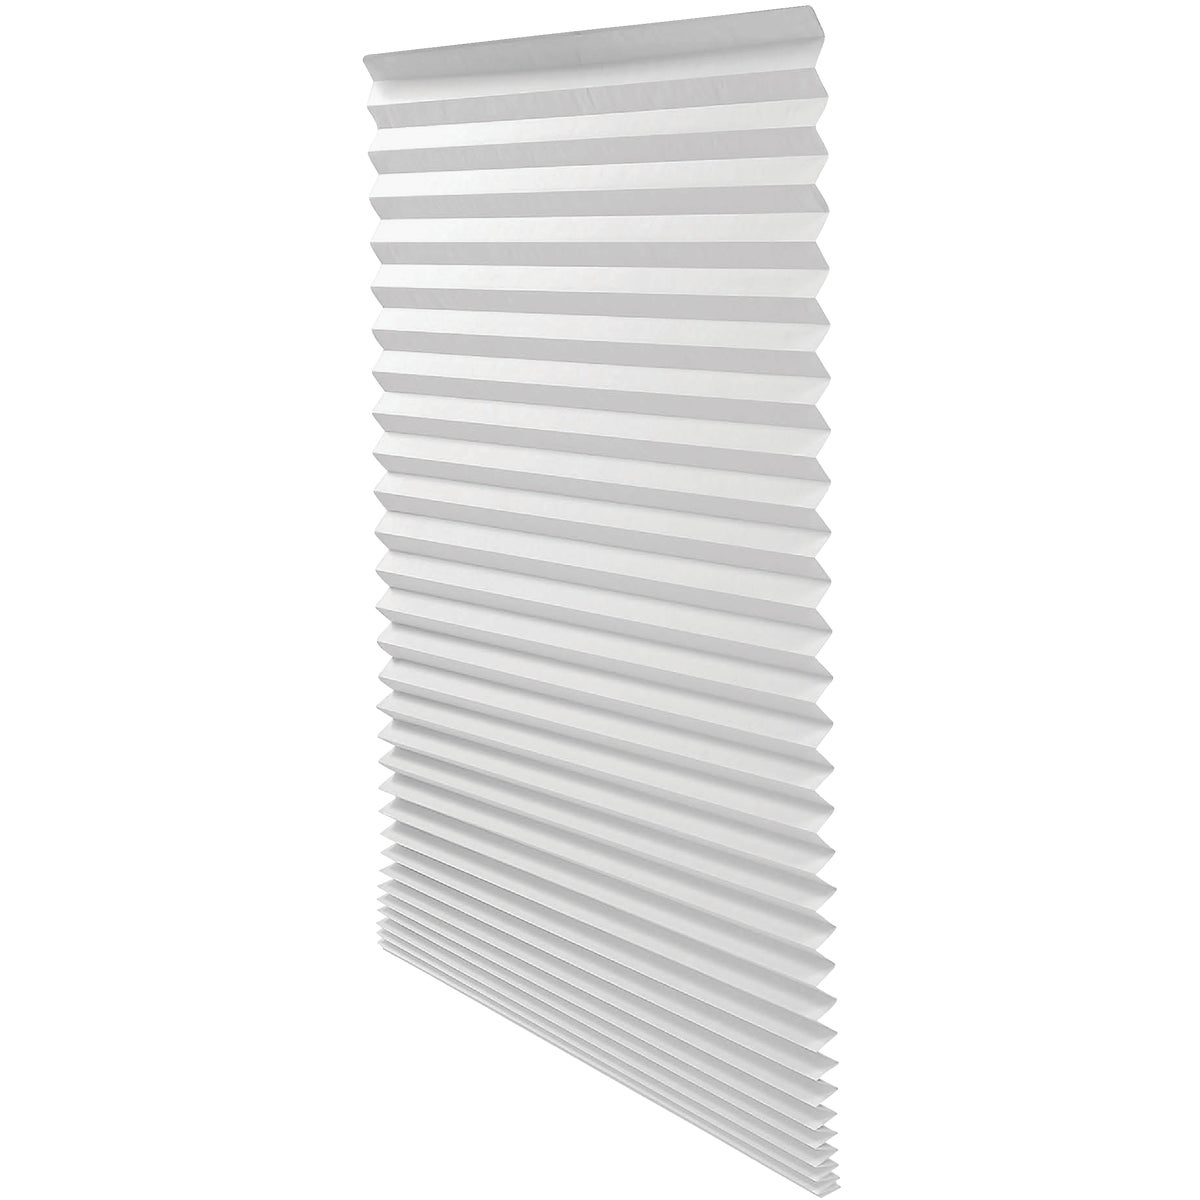 48X72 REDI SHADE - 3142376 by Redi Shade Inc